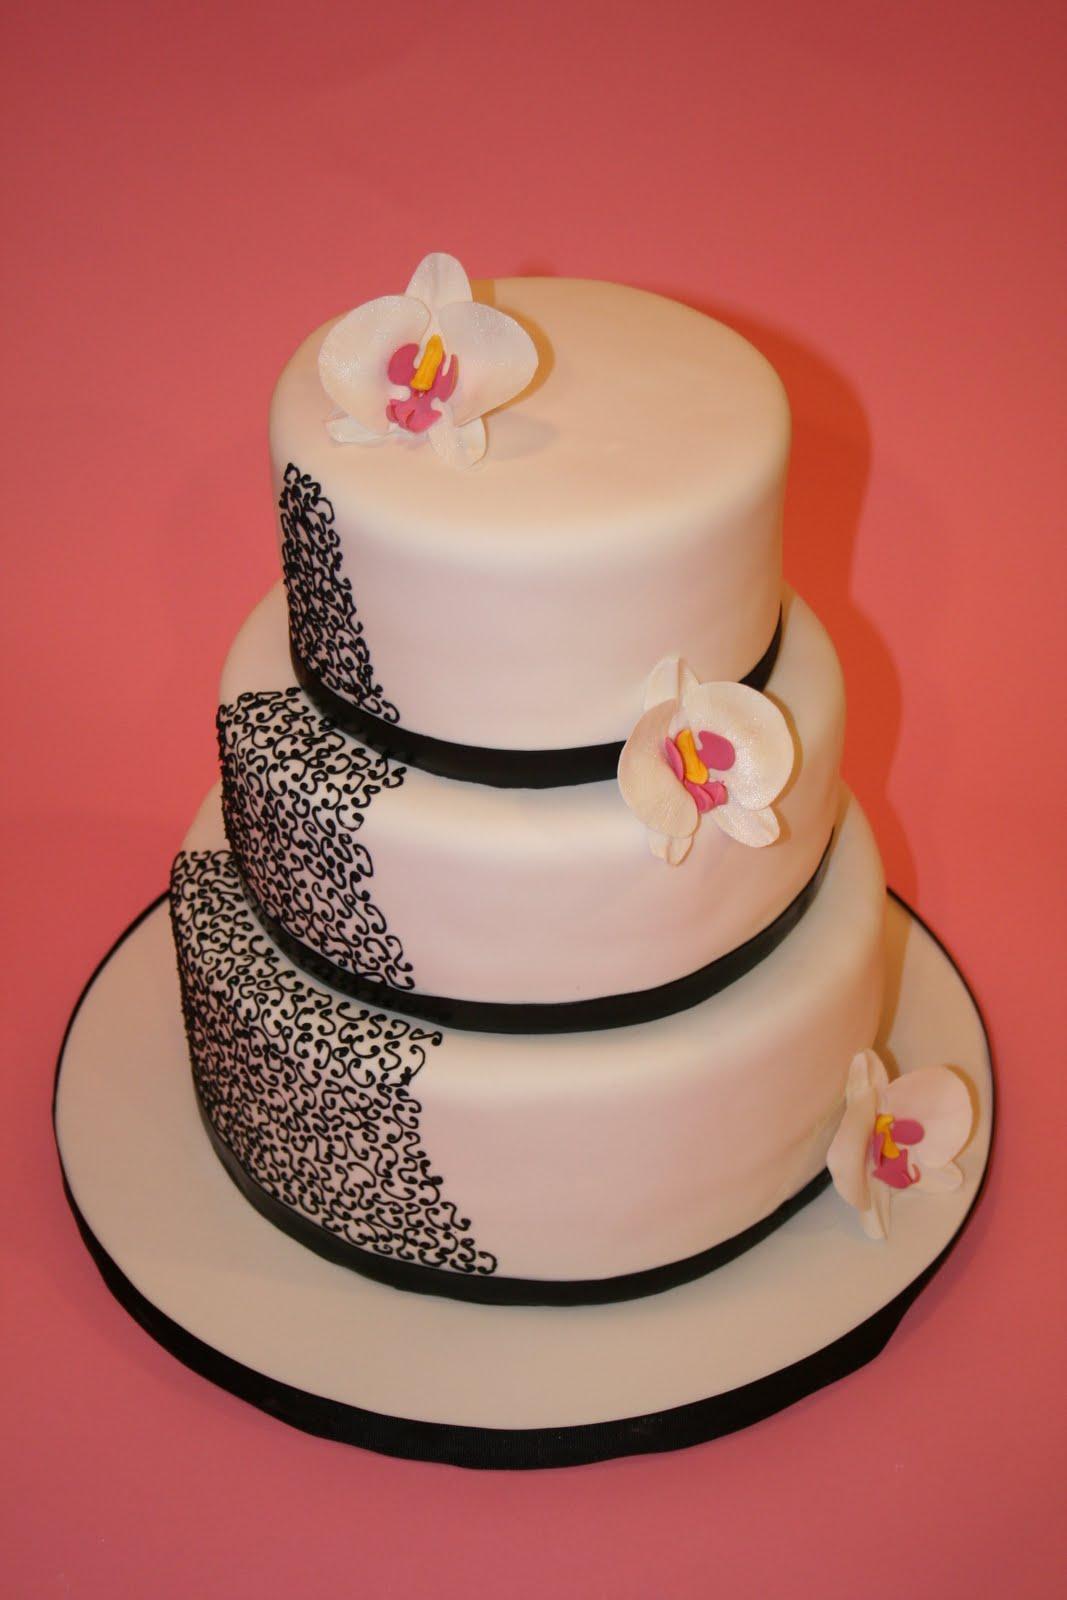 Sherieka s blog: 25th wedding anniversary cakes